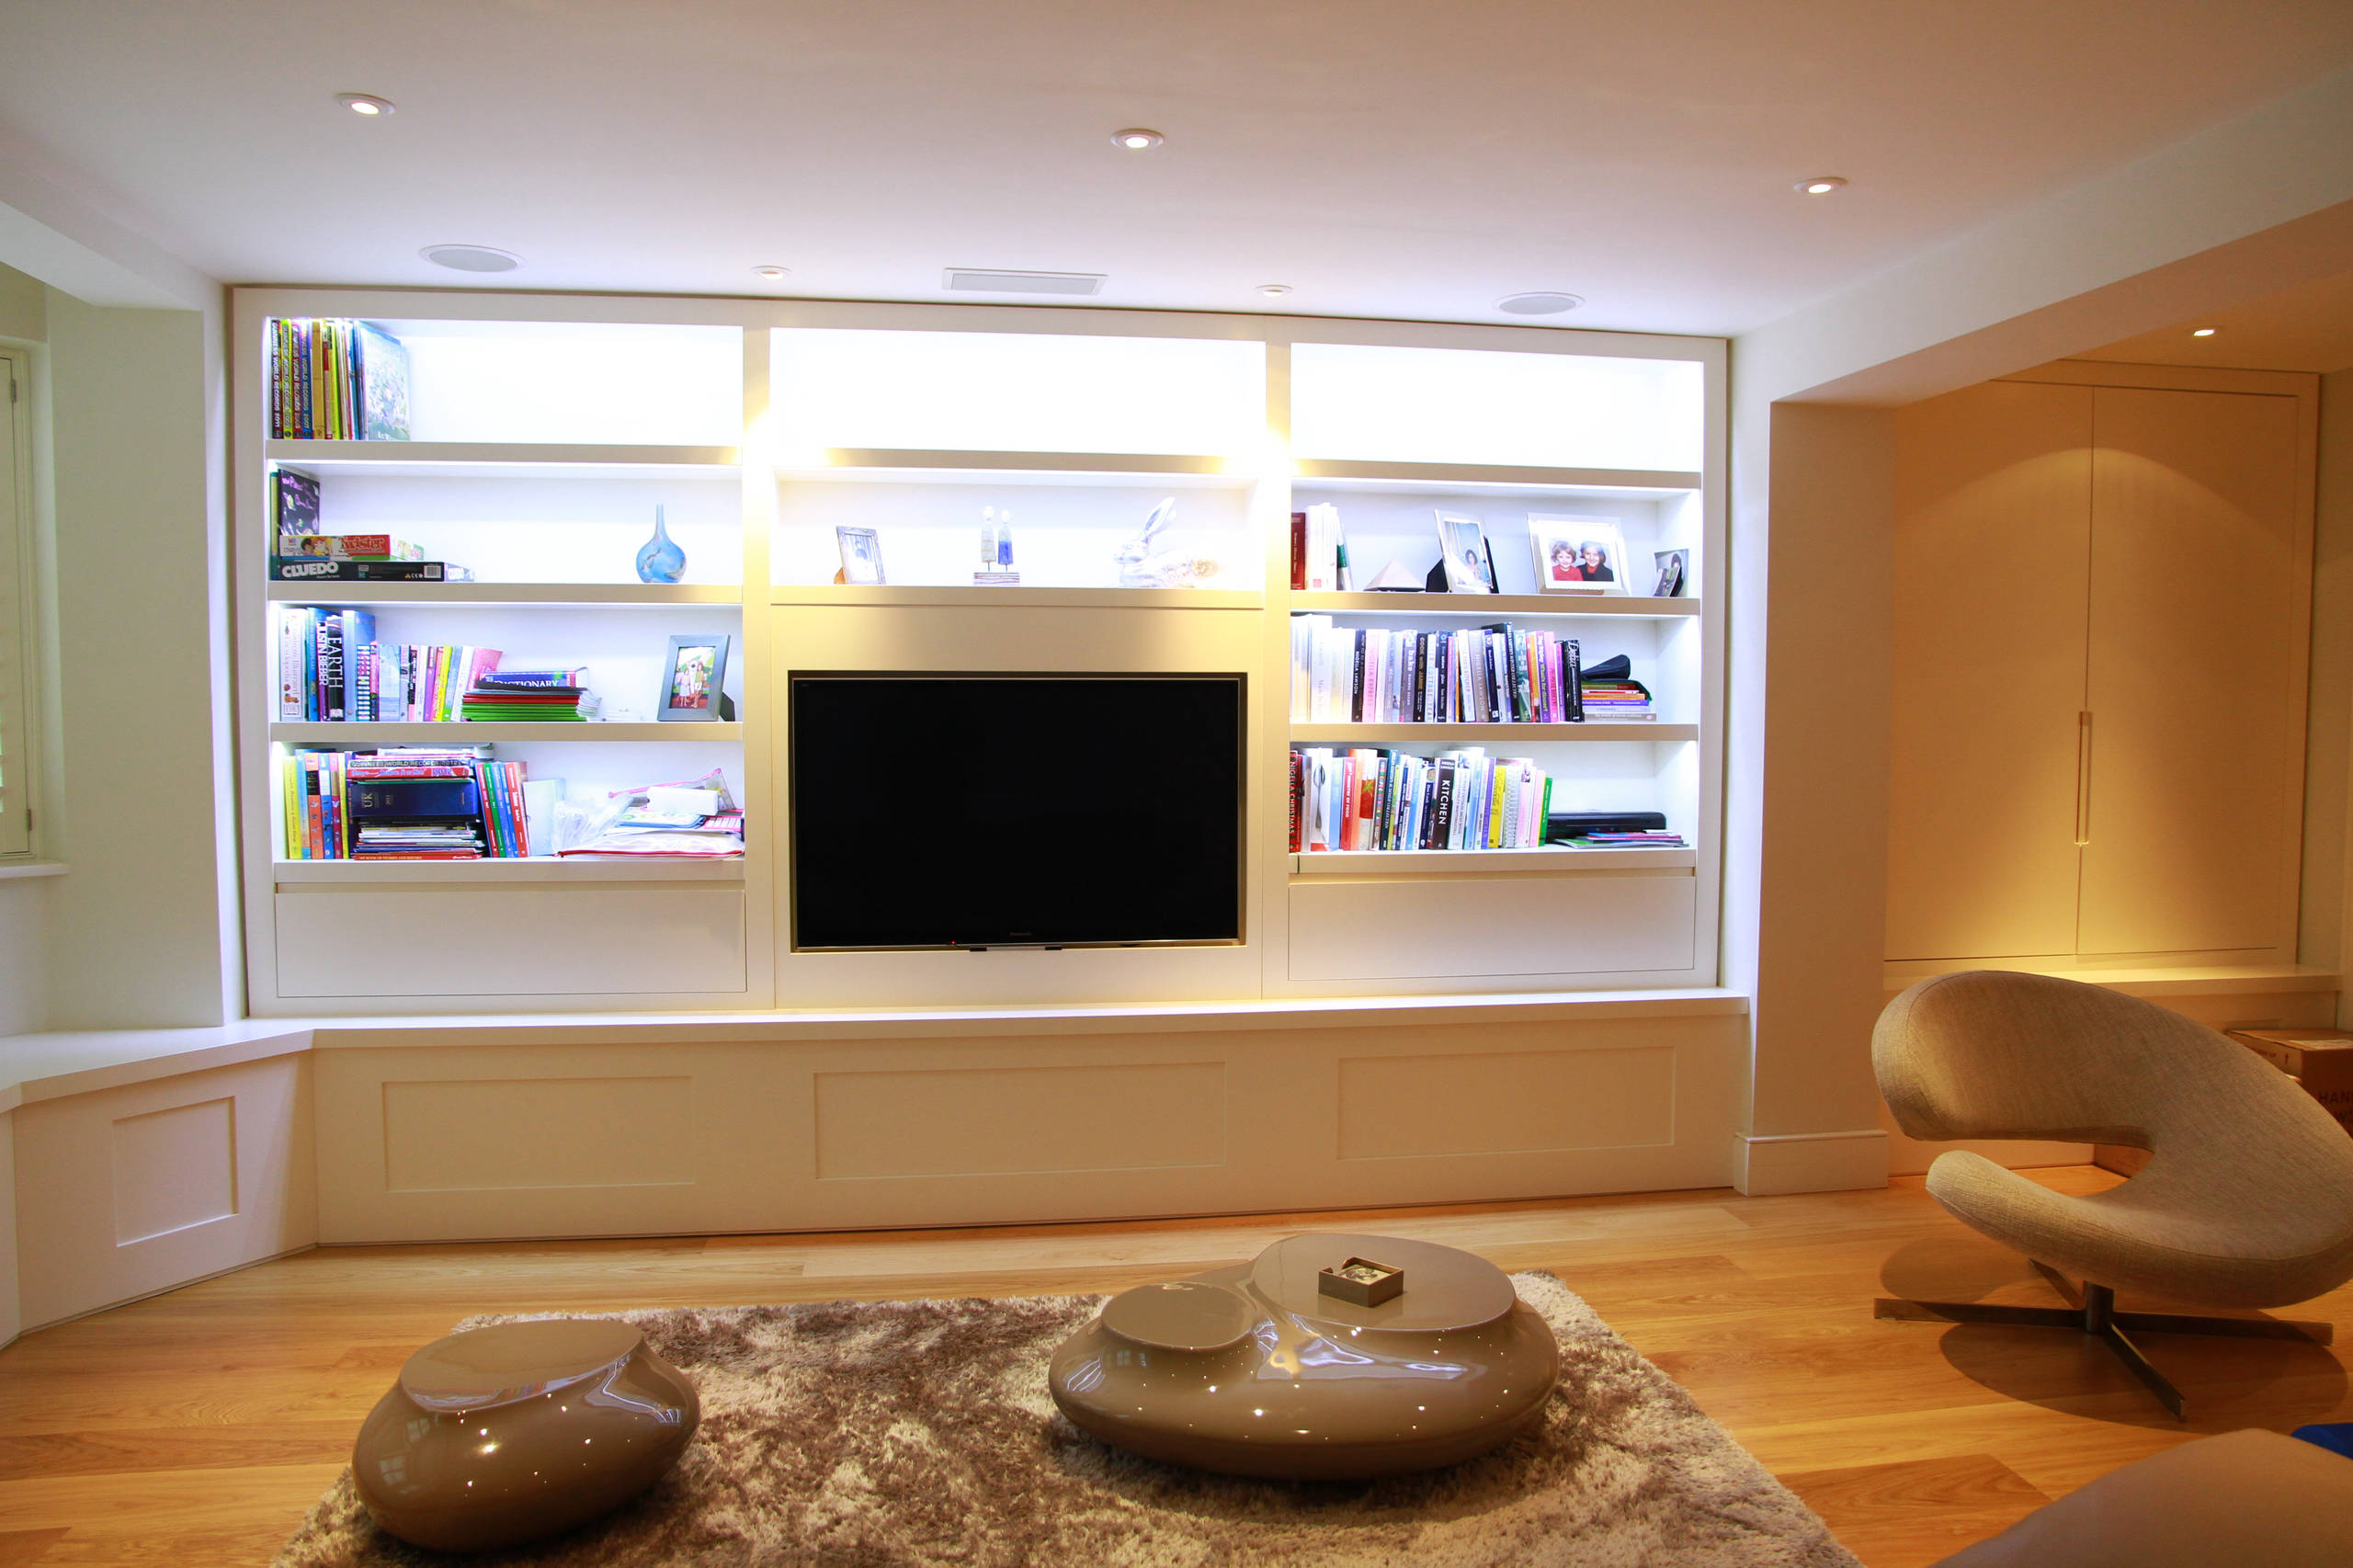 75 Beautiful Small Living Room With A Media Wall Pictures Ideas April 2021 Houzz